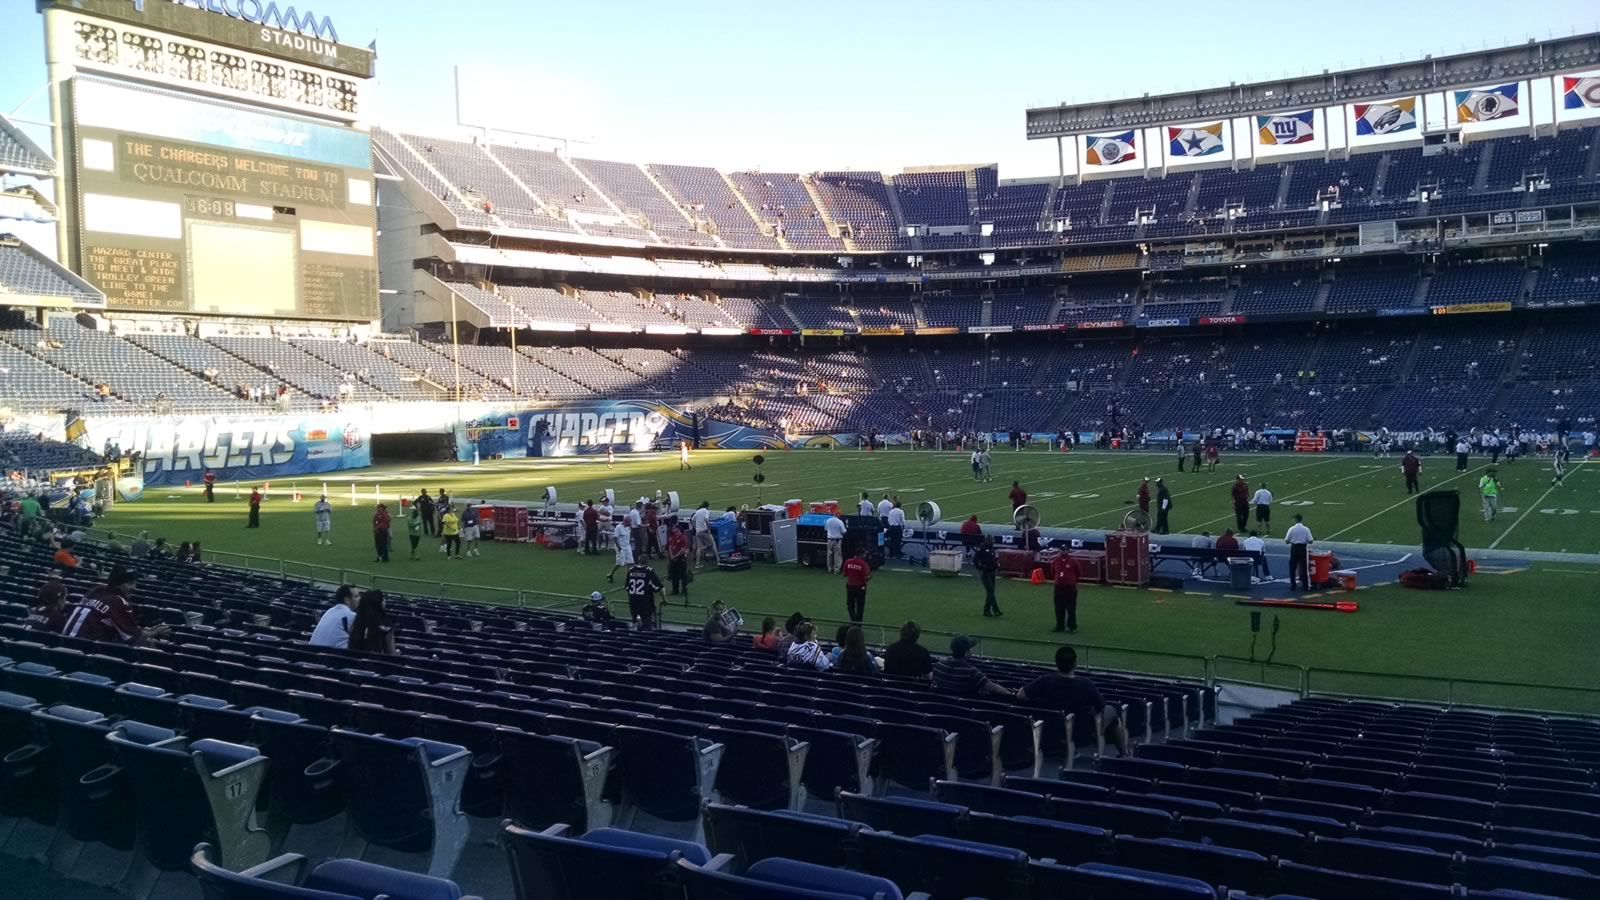 Seat View for Qualcomm Stadium Field 8